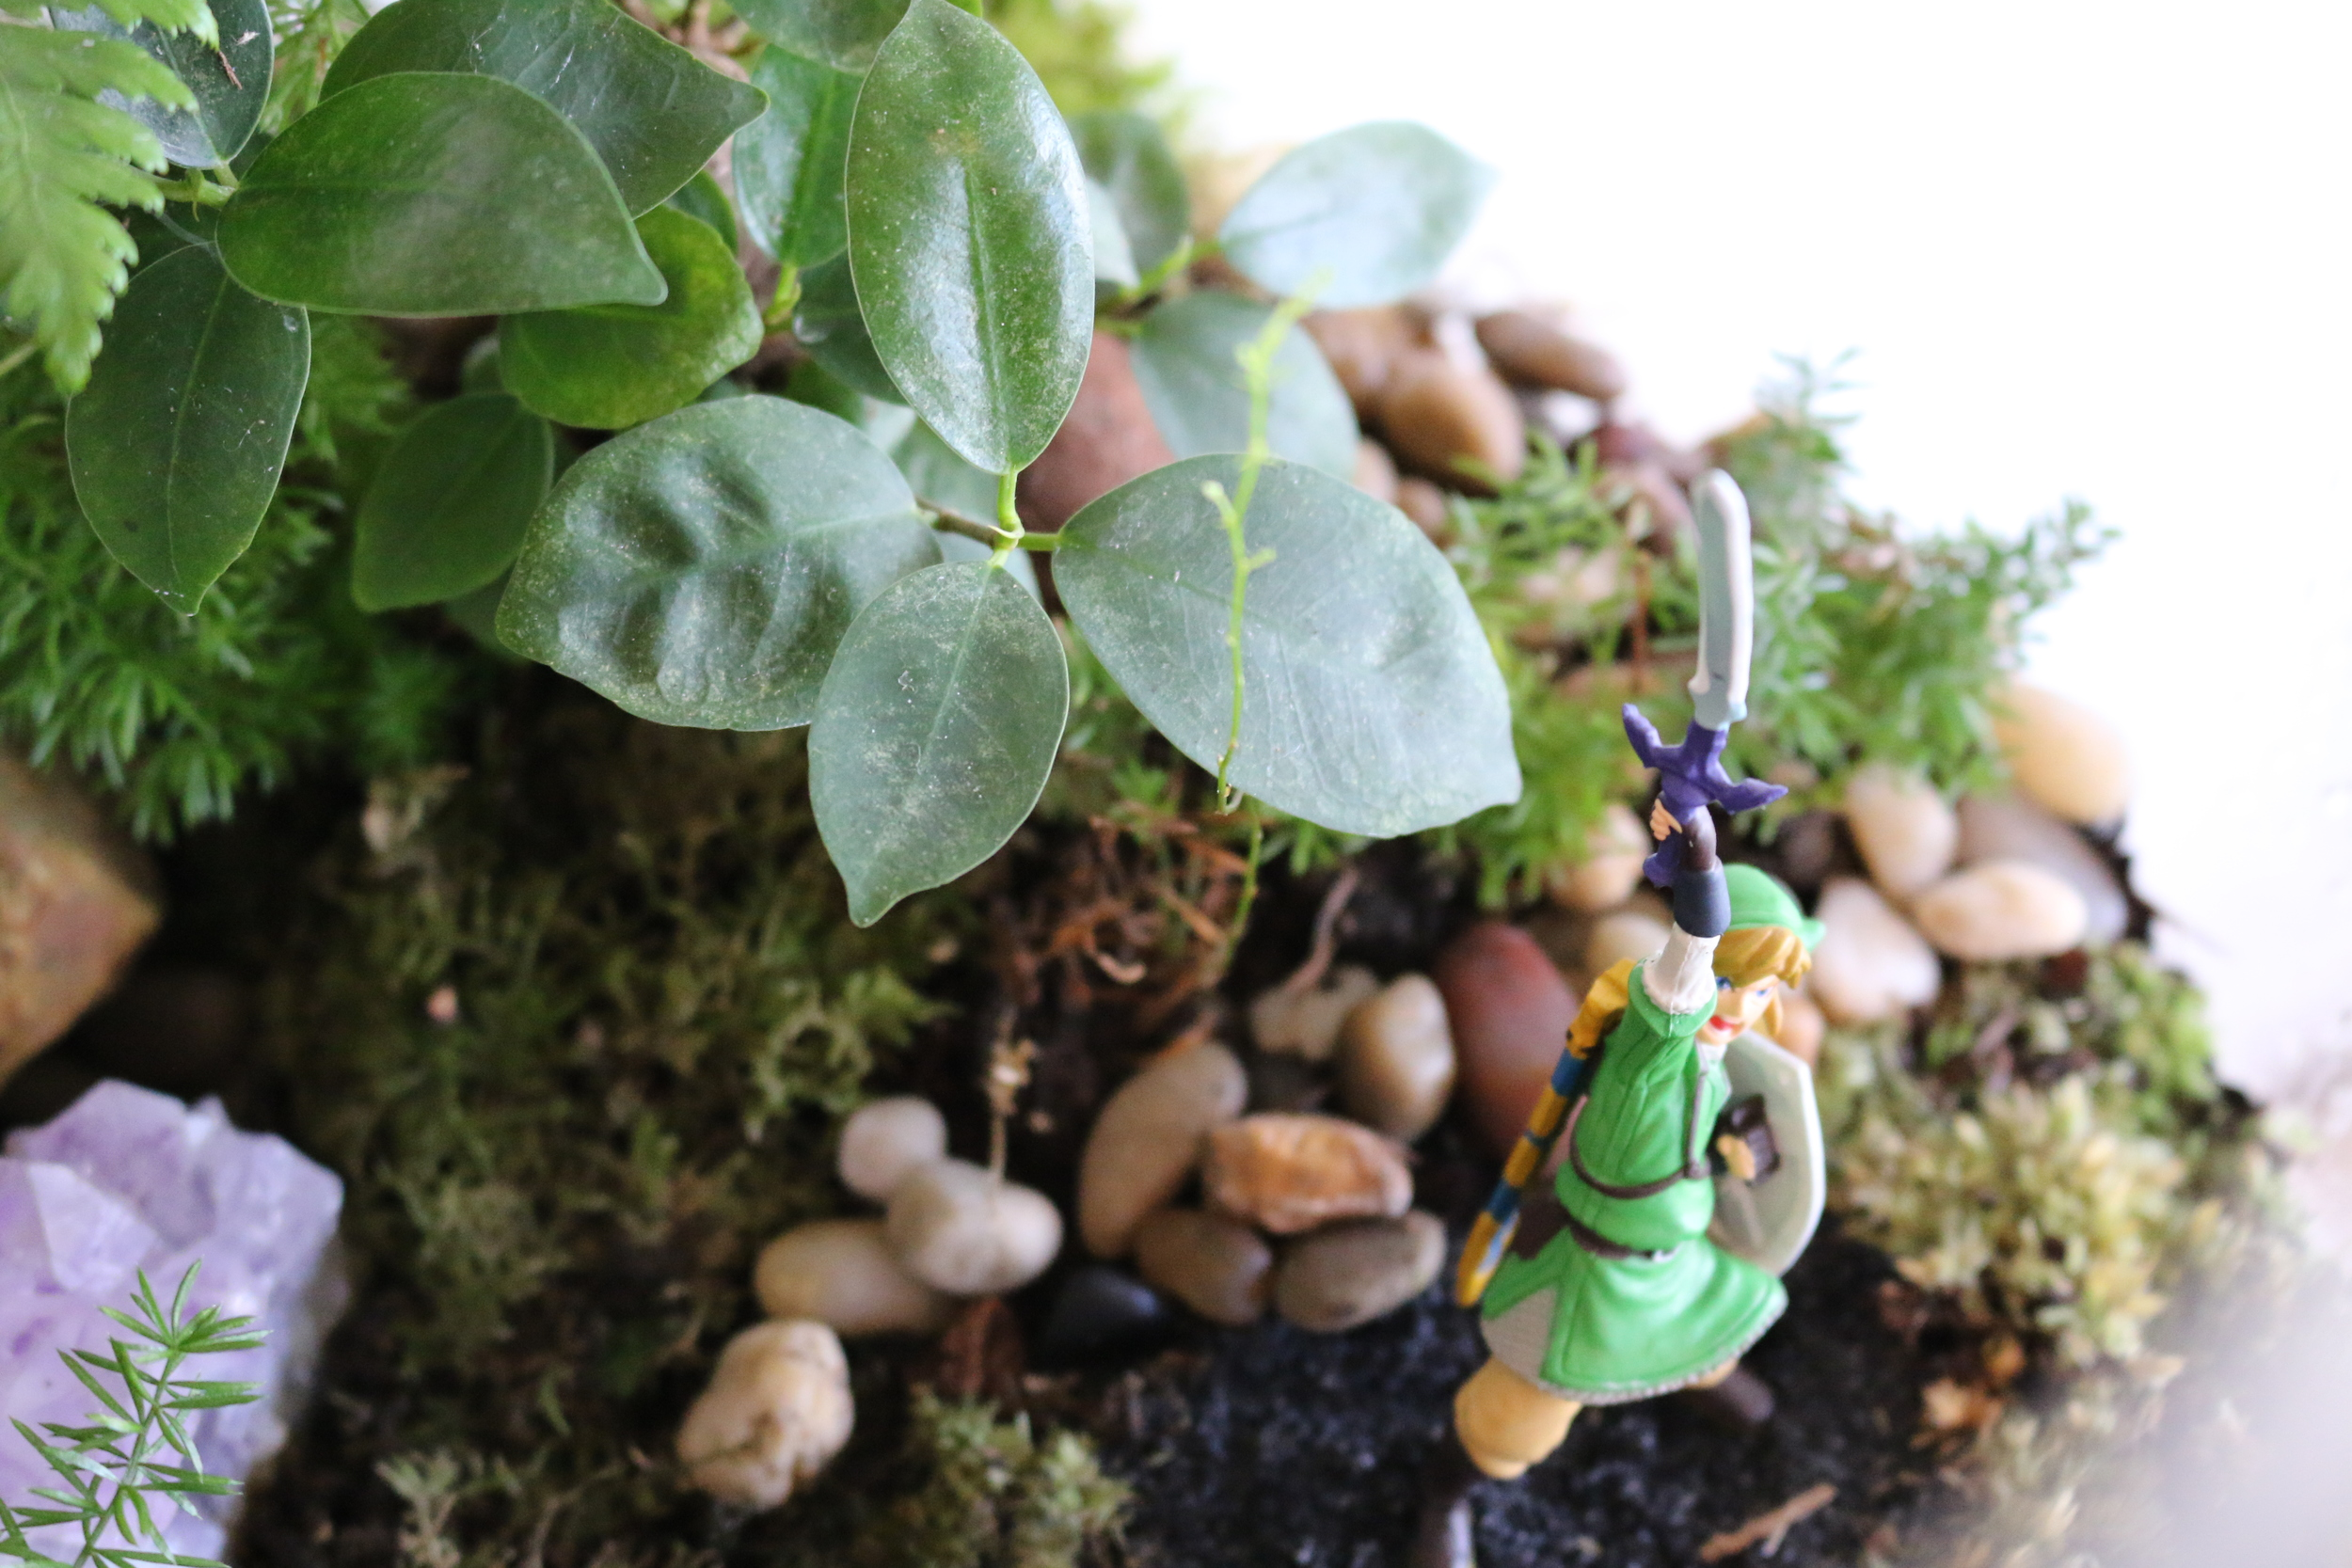 The Legend of Zelda Terrarium